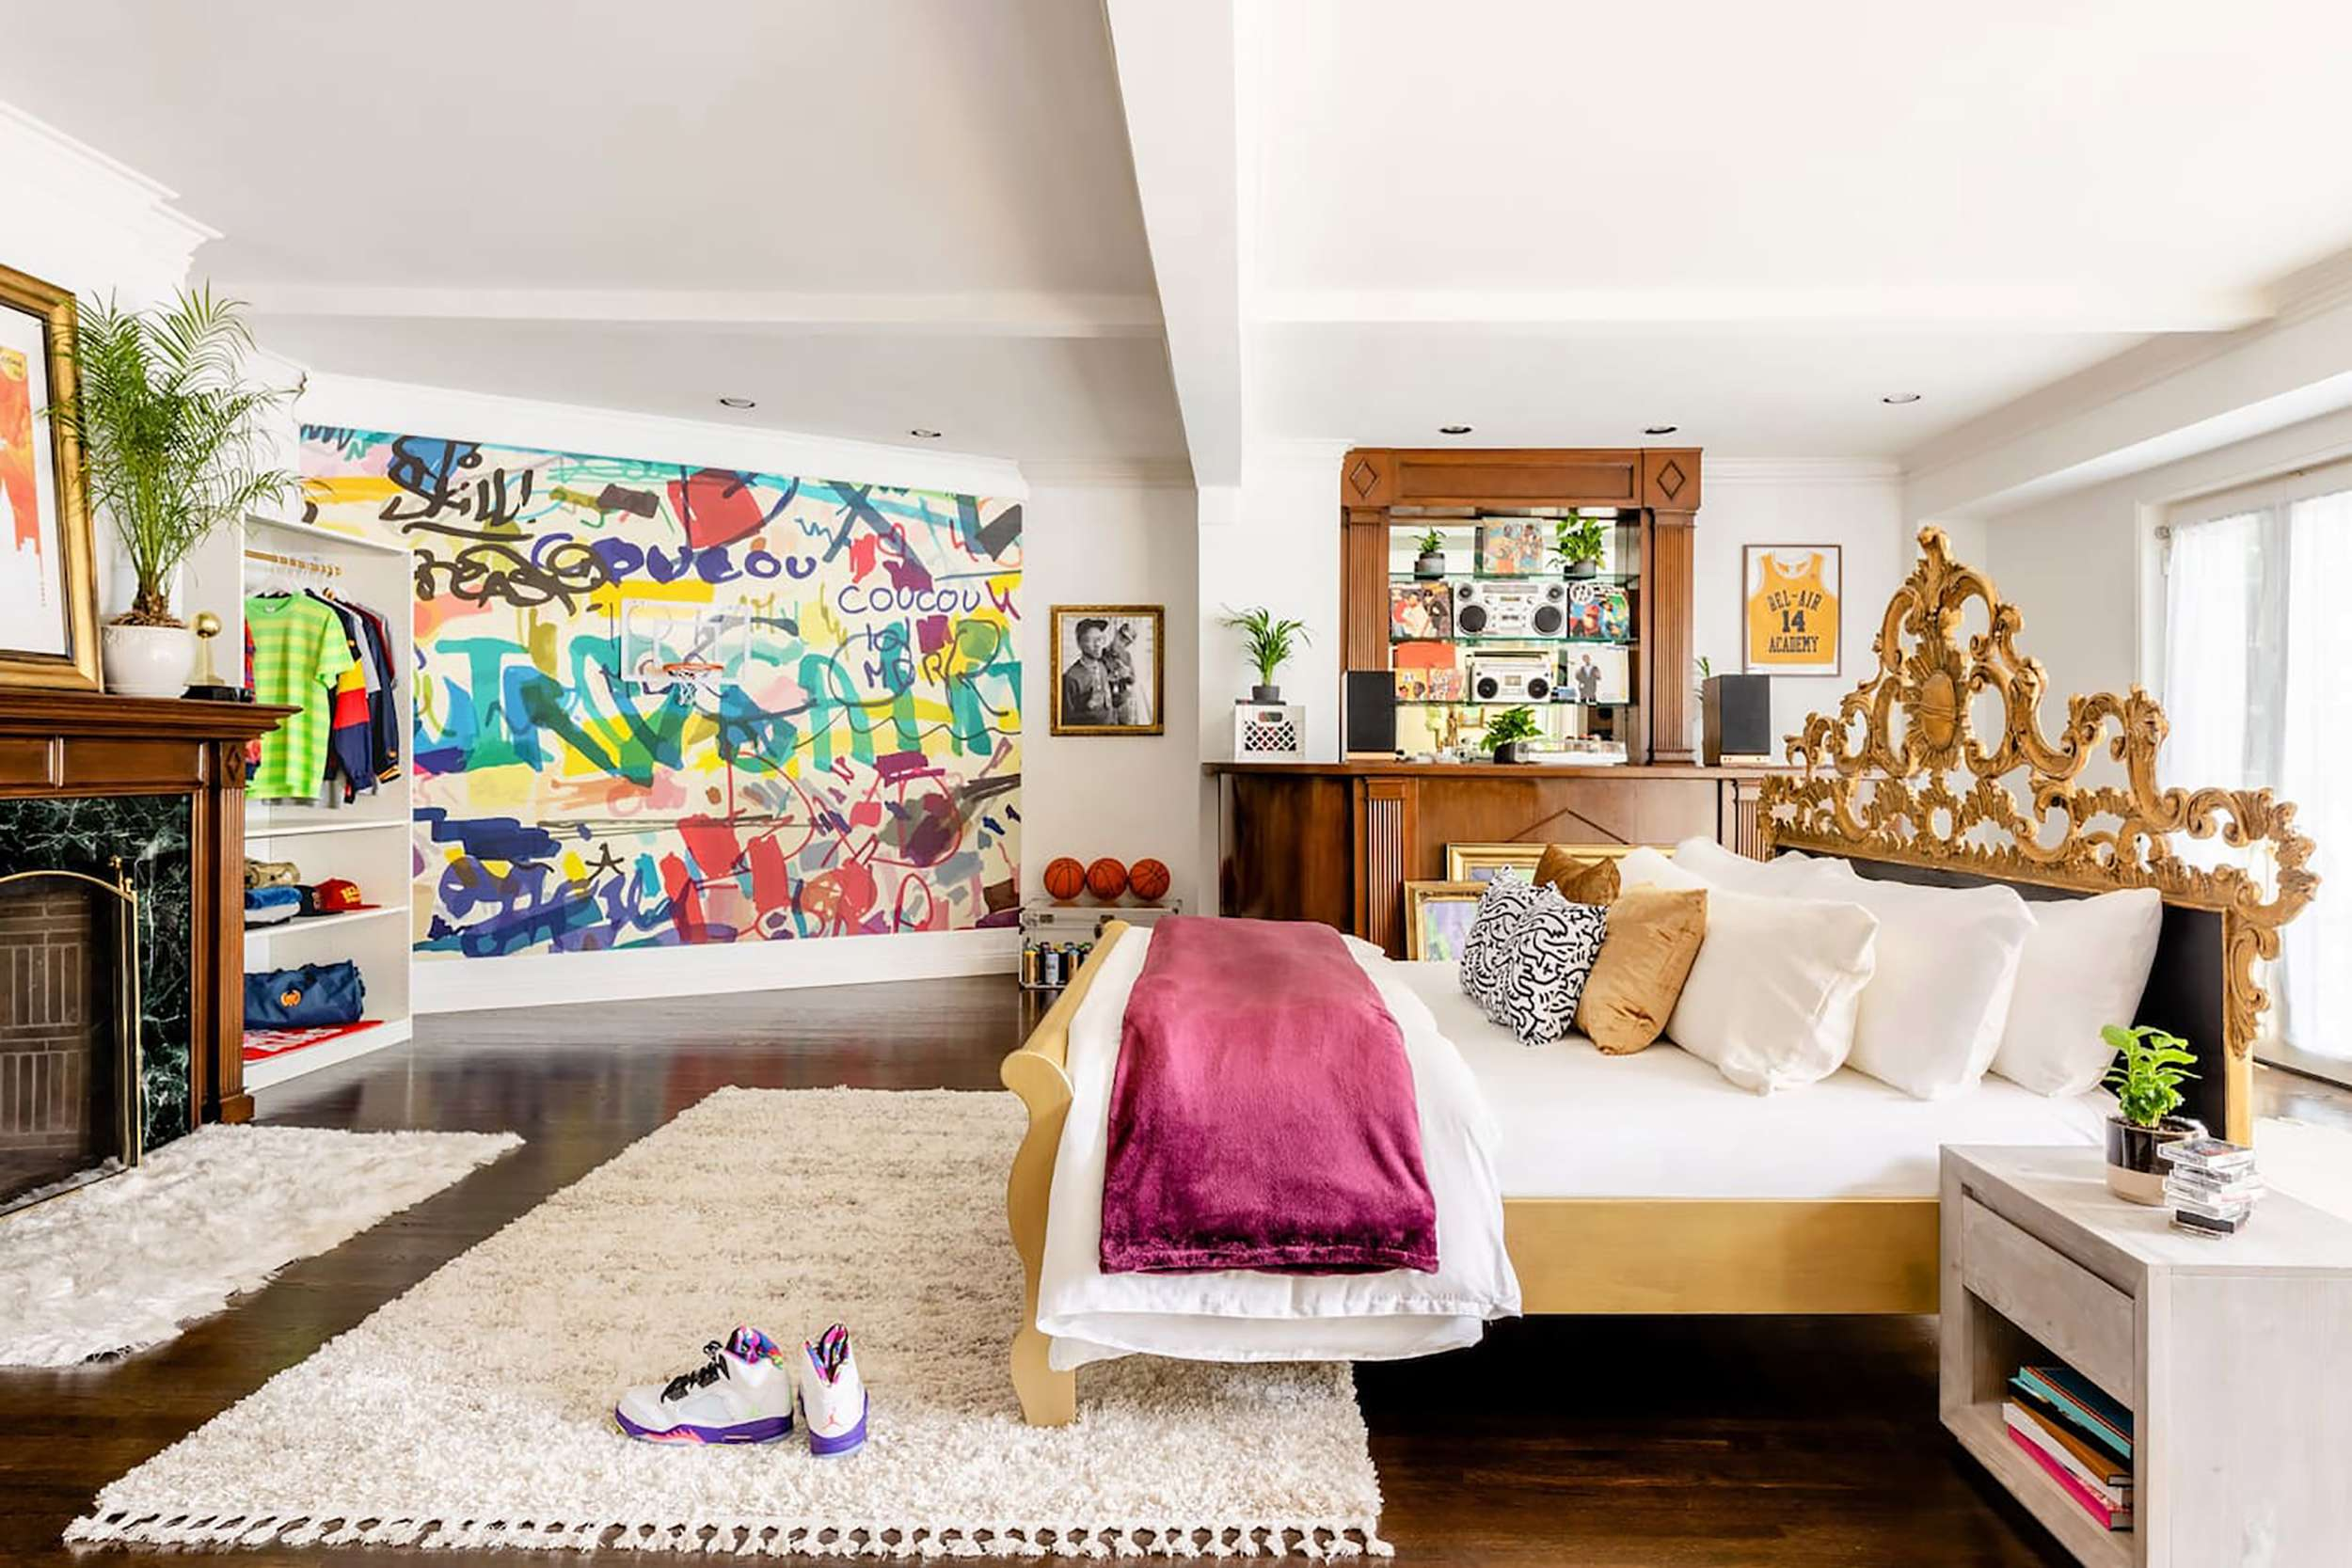 An 80's inspired bedroom features a large bed with a golden bedframe, a graffiti wall, and a boombox station.